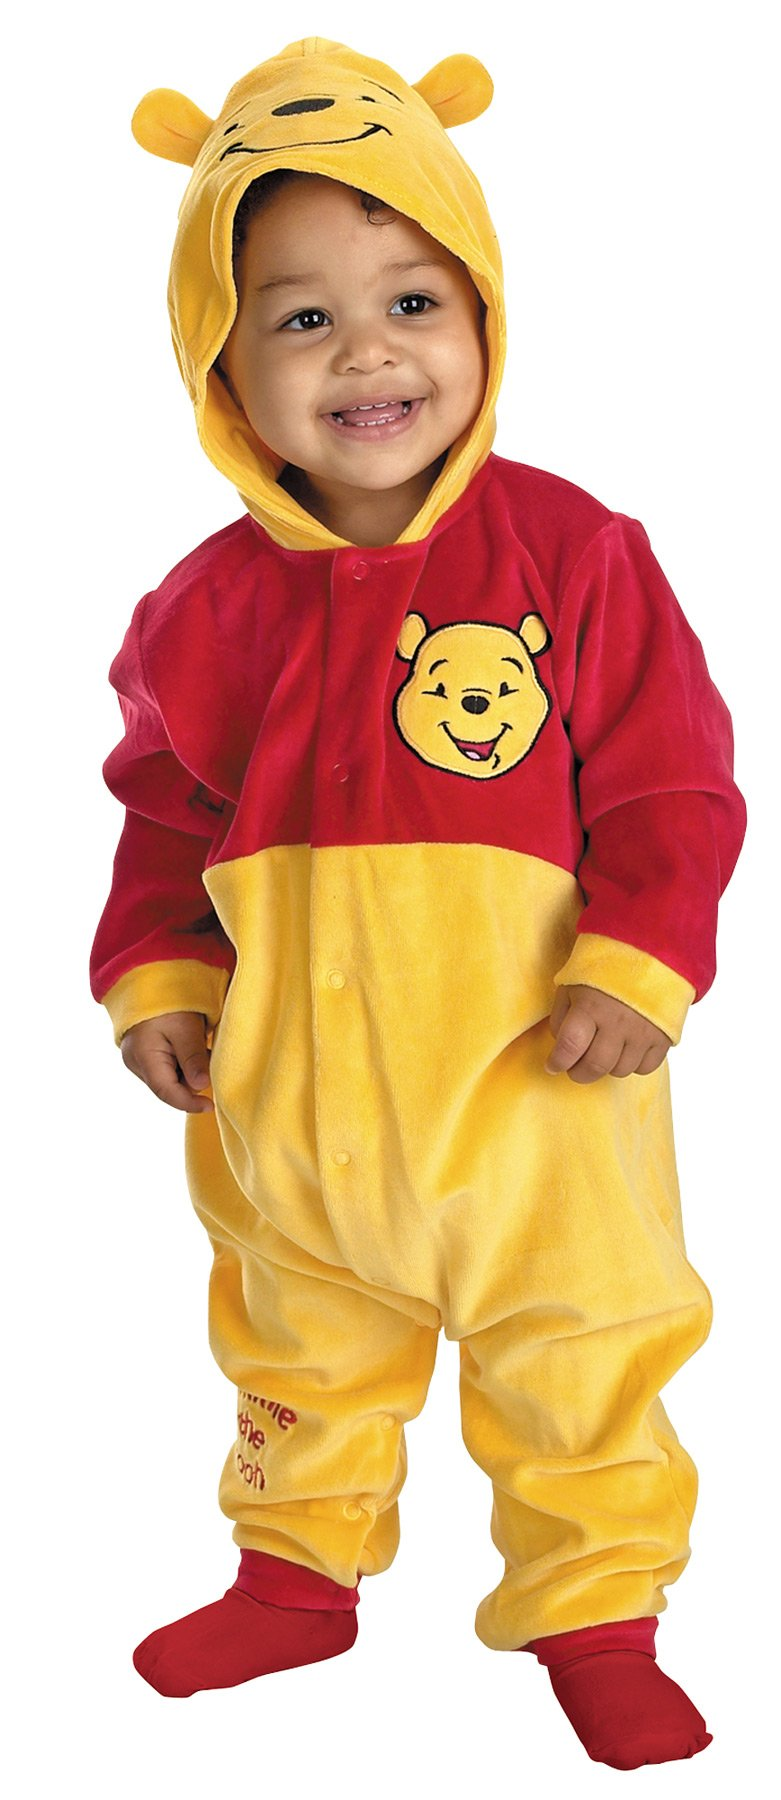 494b38262d12 Winnie The Pooh Toddler Costume 12-18 Months